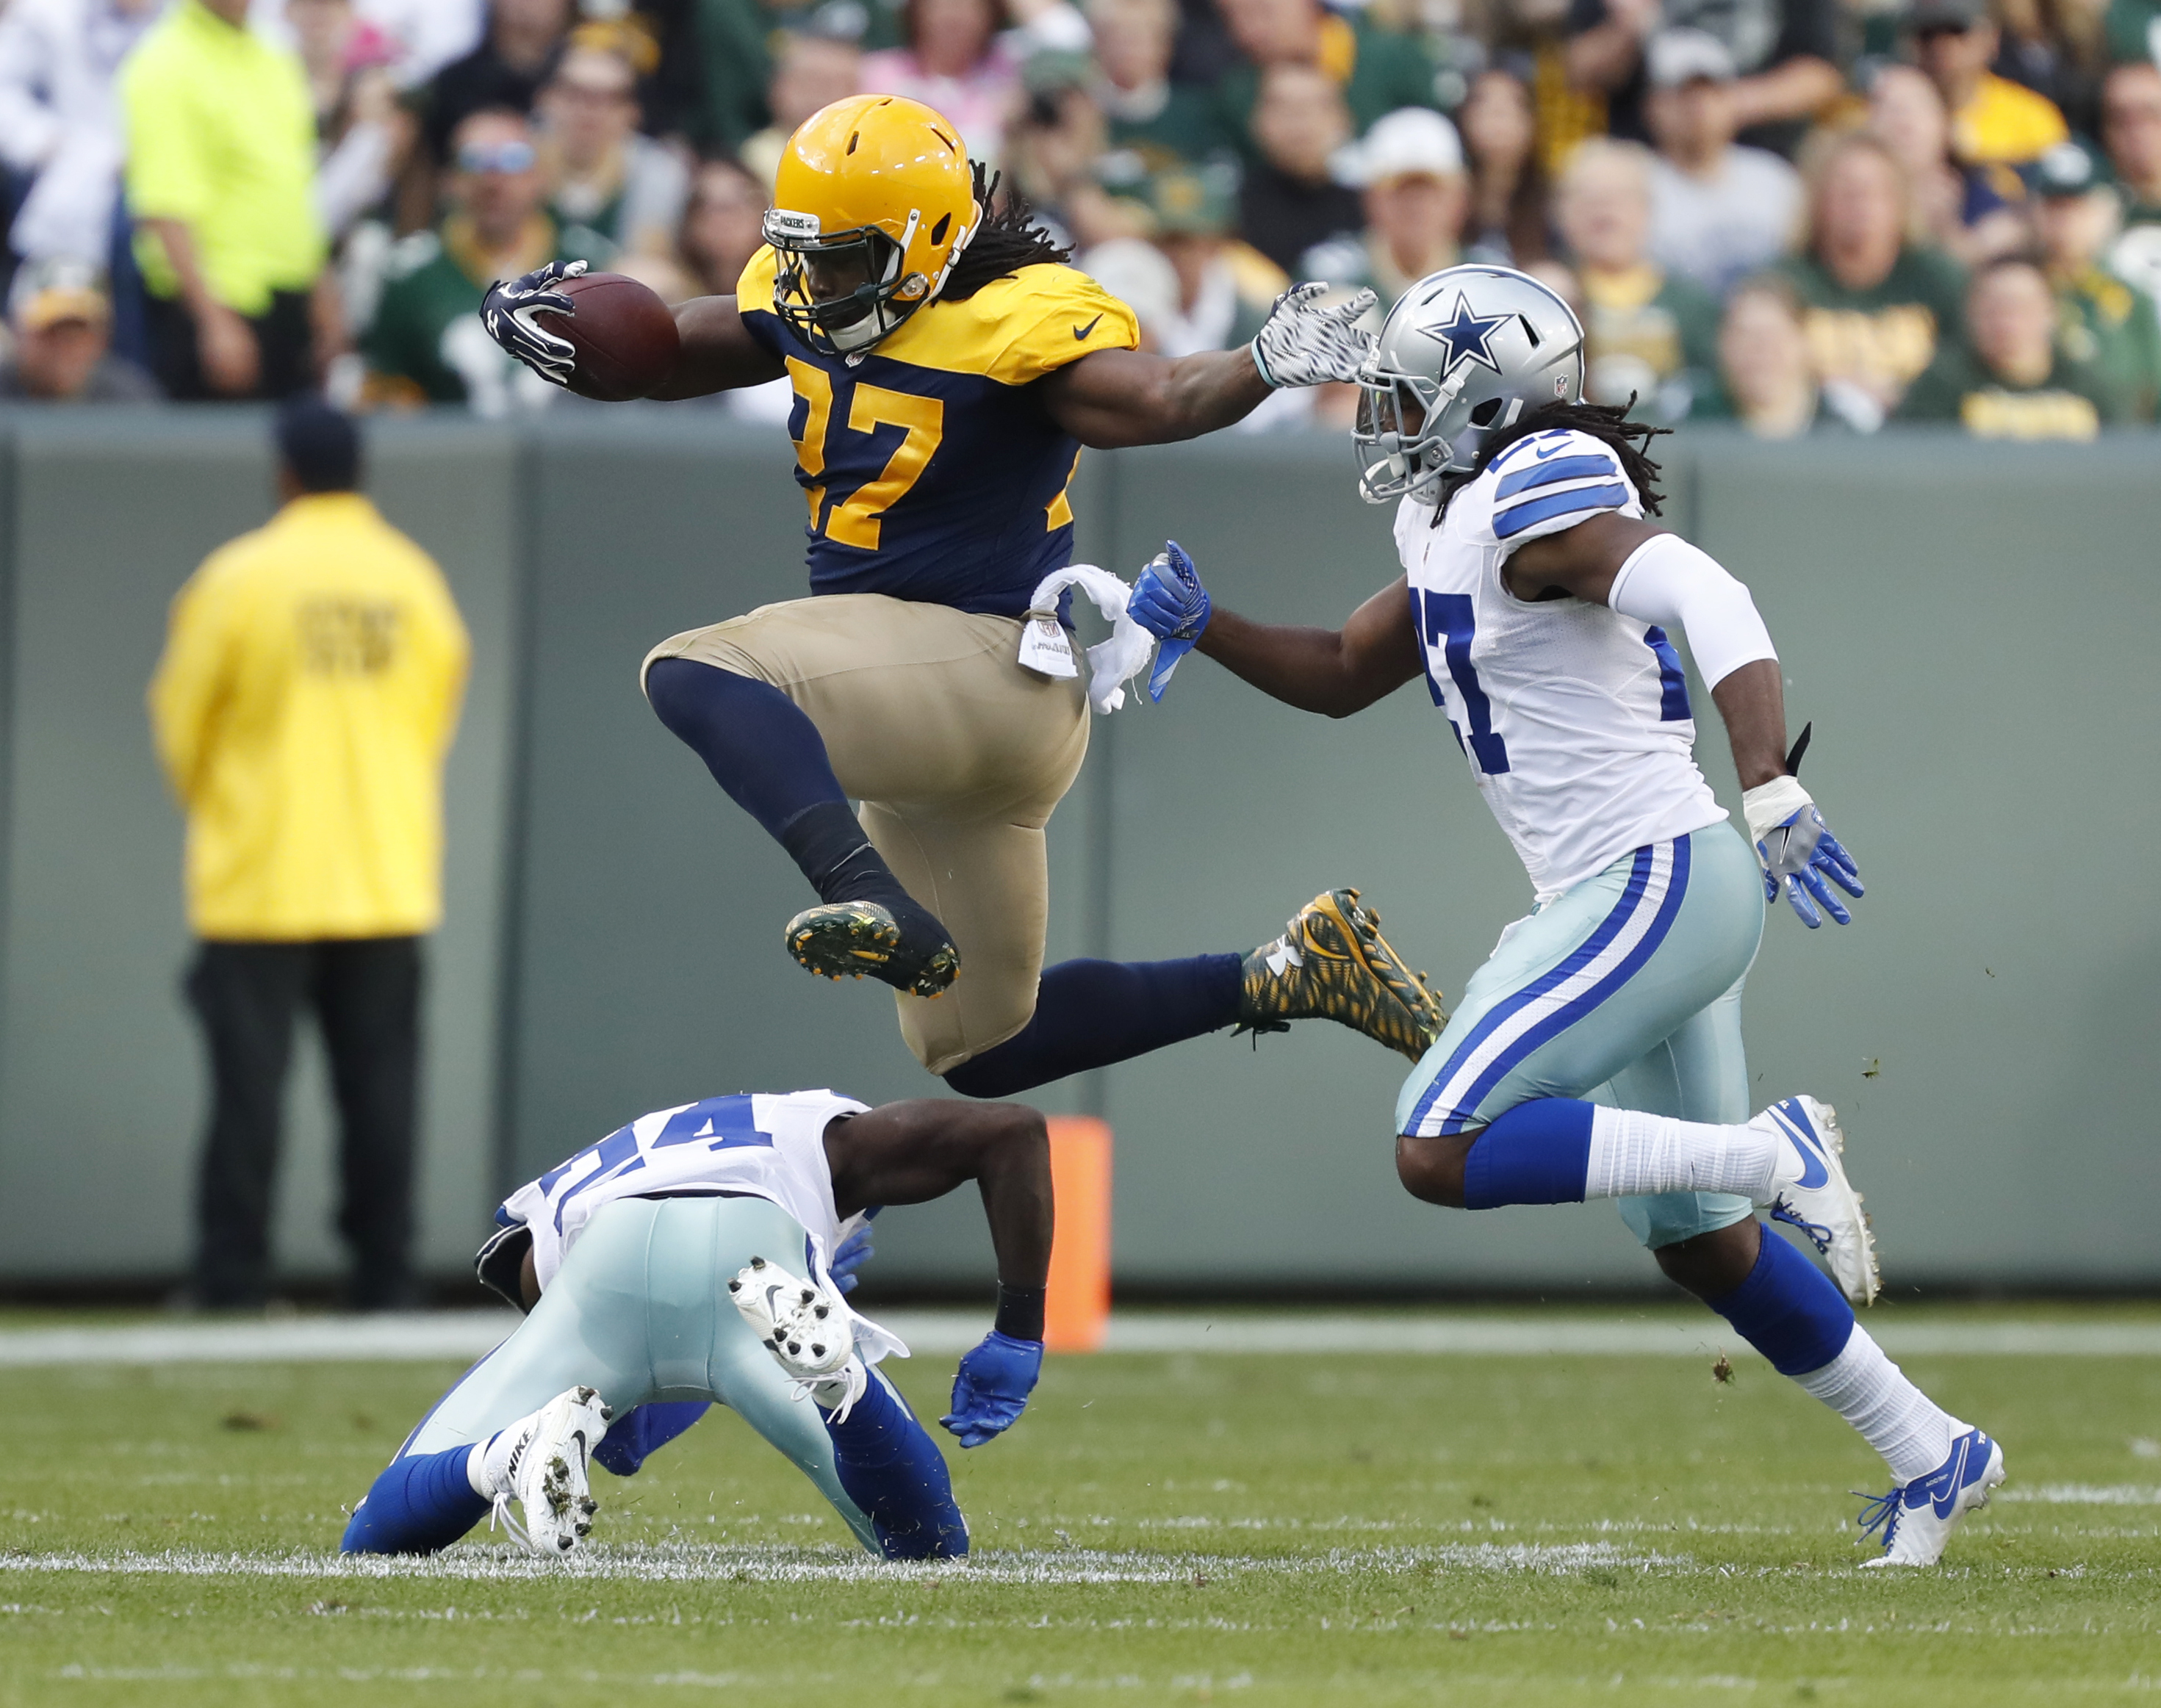 Green Bay Packers' Eddie Lacy leaps over Dallas Cowboys' Morris Claiborne during the first half of an NFL football game Sunday, Oct. 16, 2016, in Green Bay, Wis. (AP Photo/Matt Ludtke)